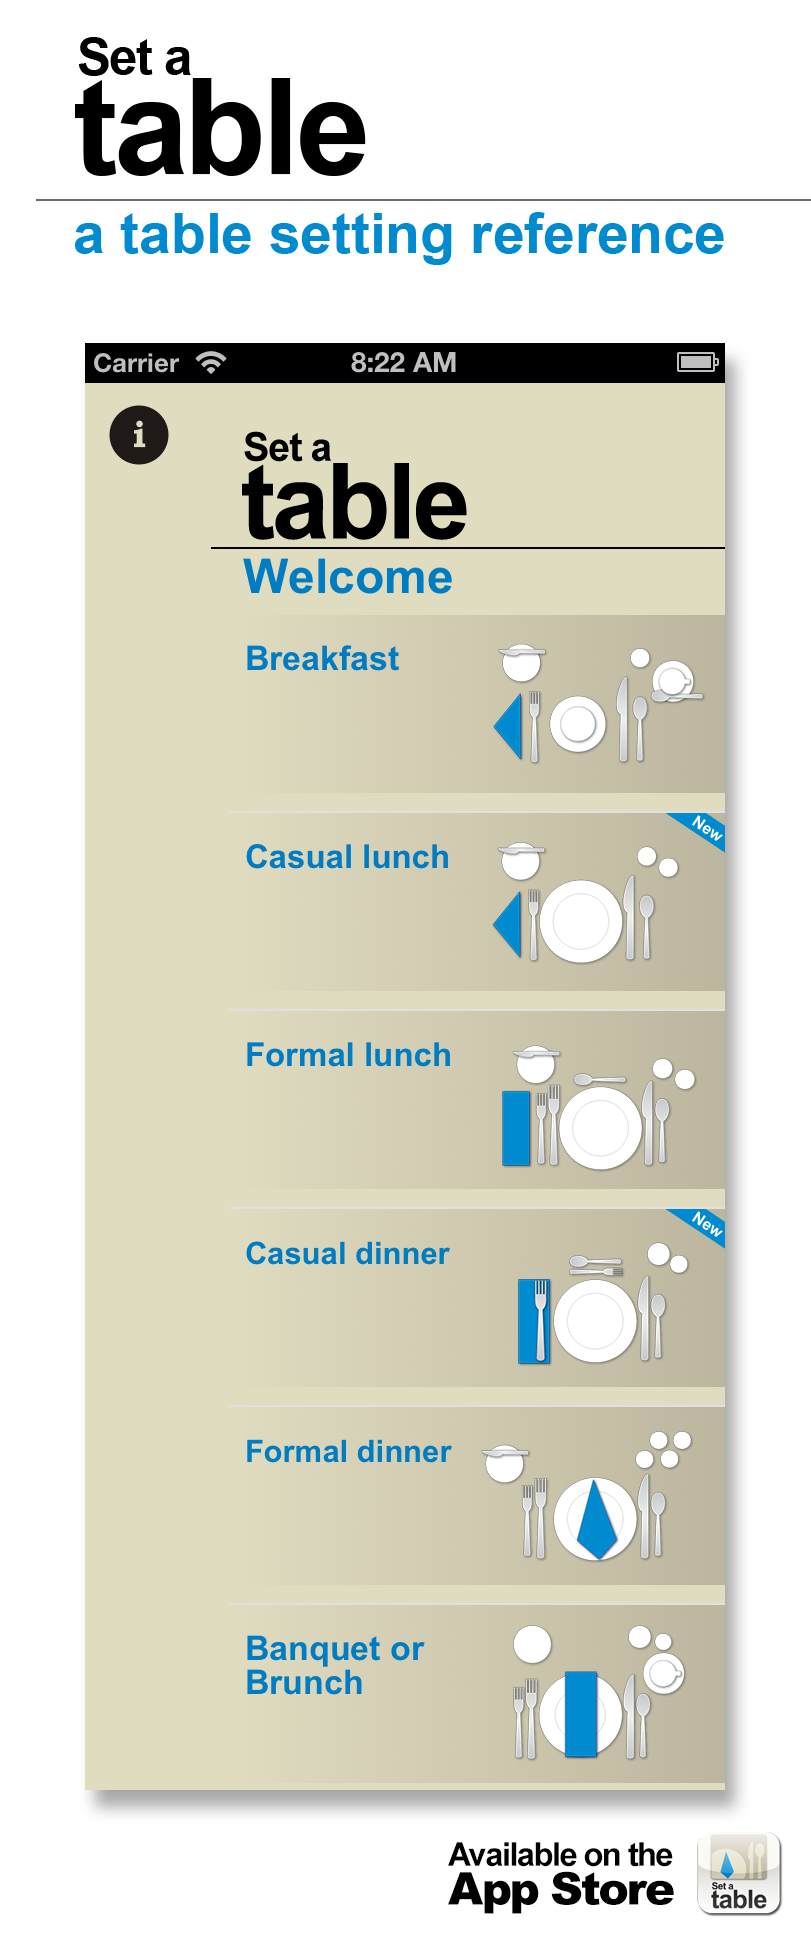 set a table a table setting reference for iphone [ 811 x 1942 Pixel ]